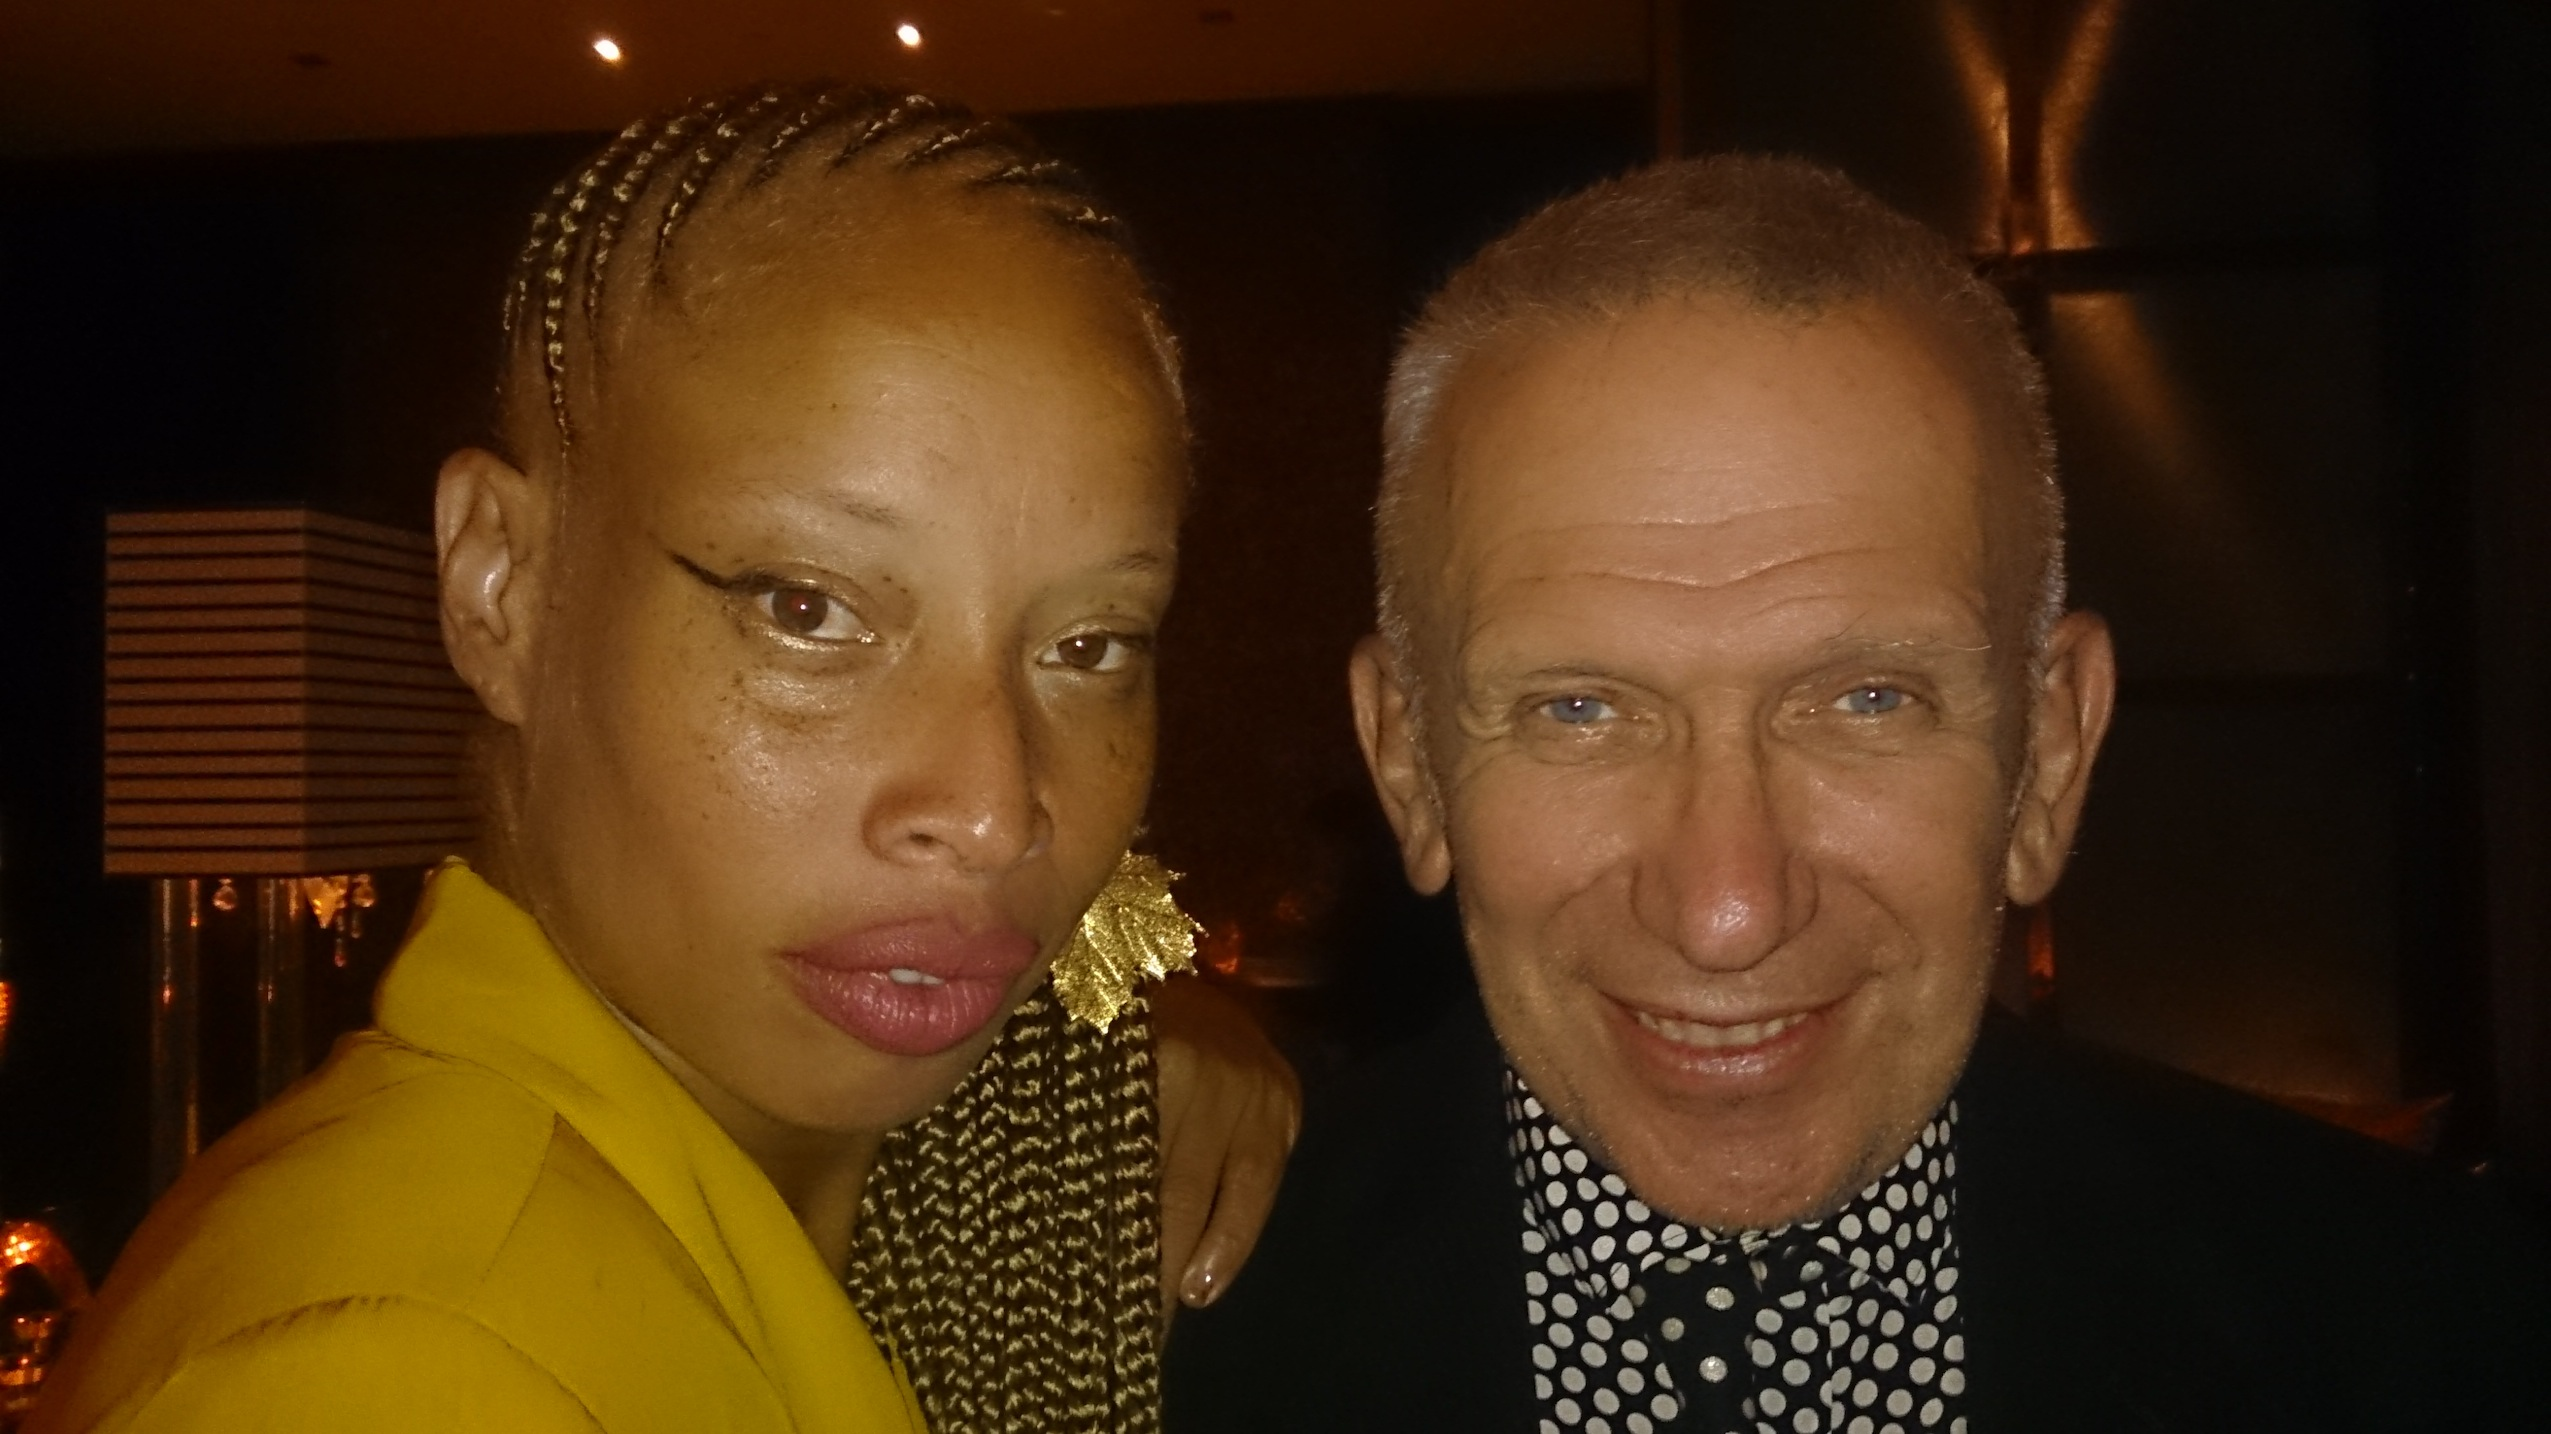 Stacey and Jean Paul Gaultier